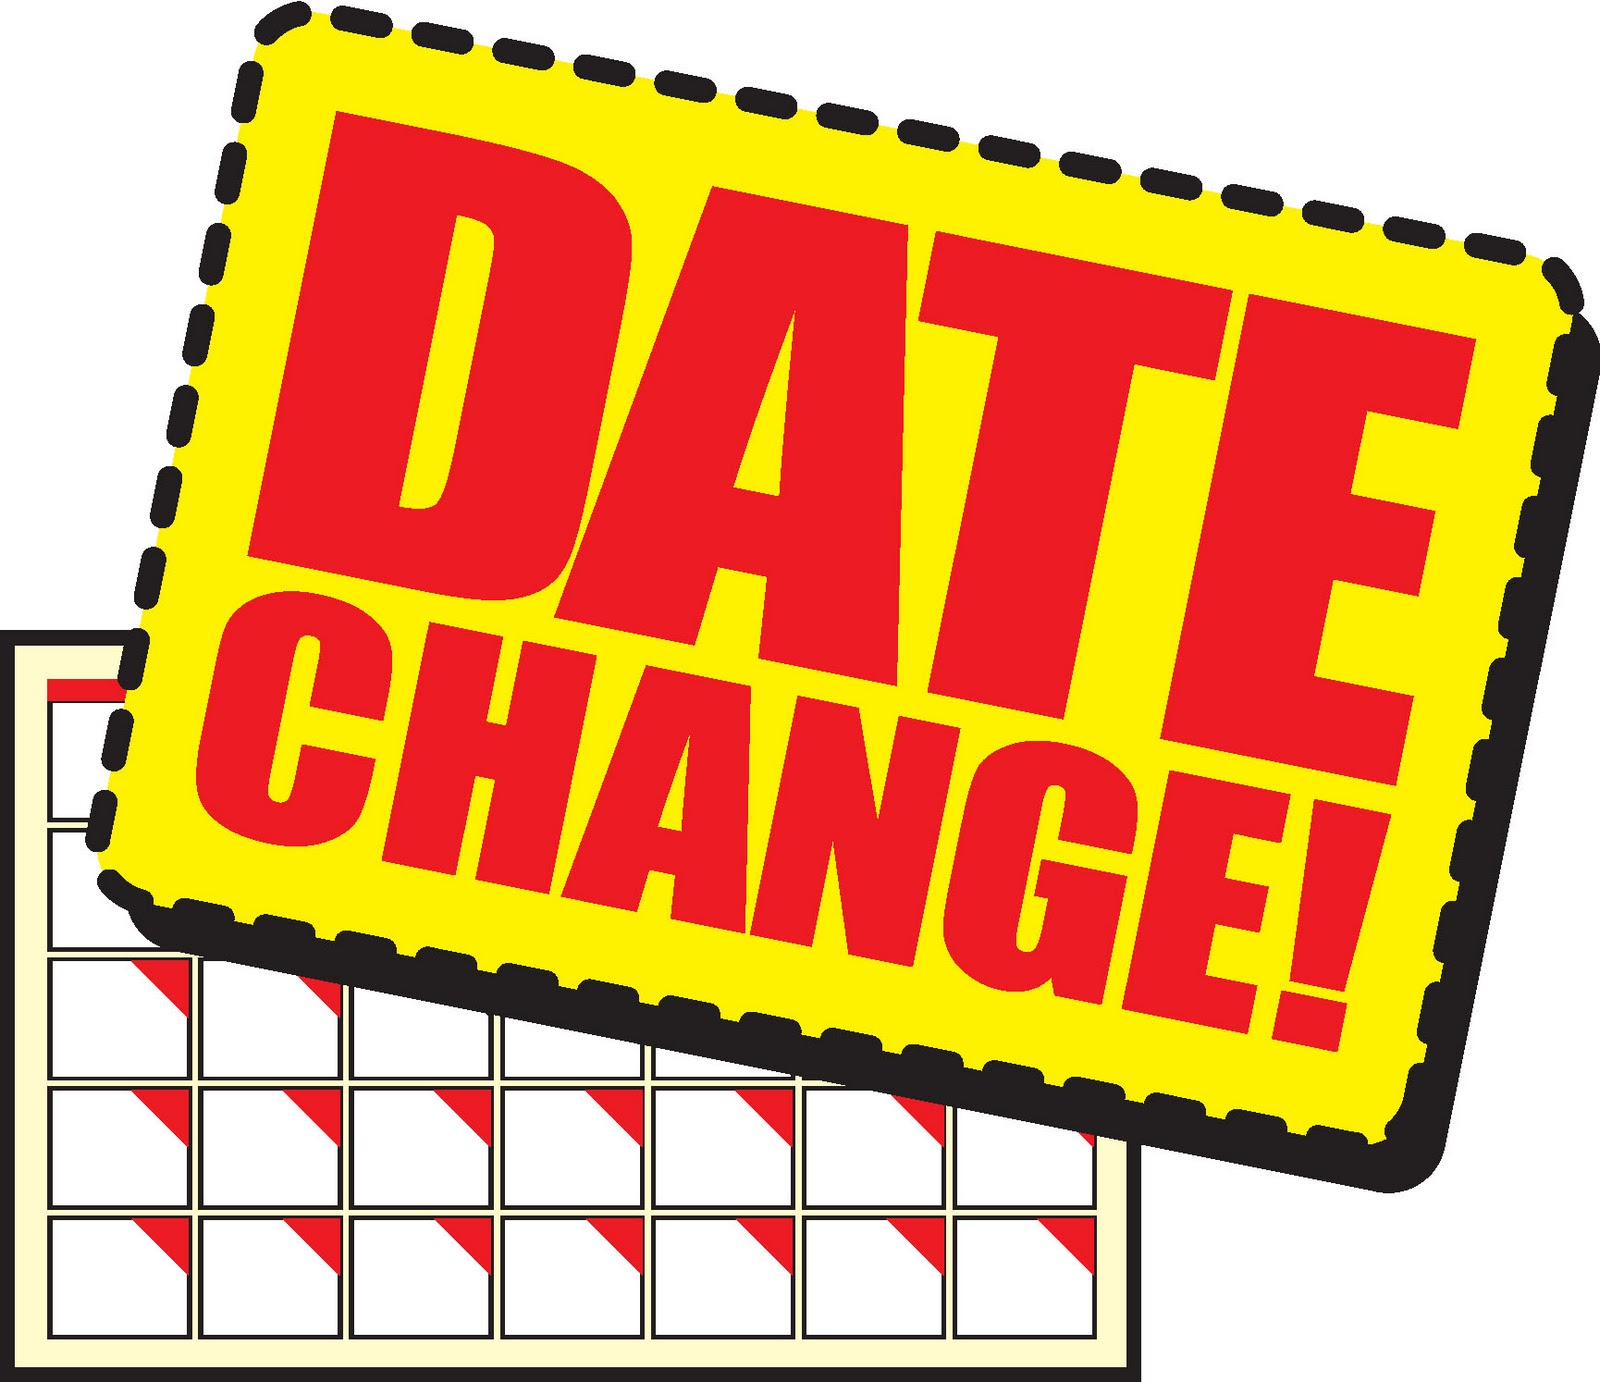 New Date Clipart.